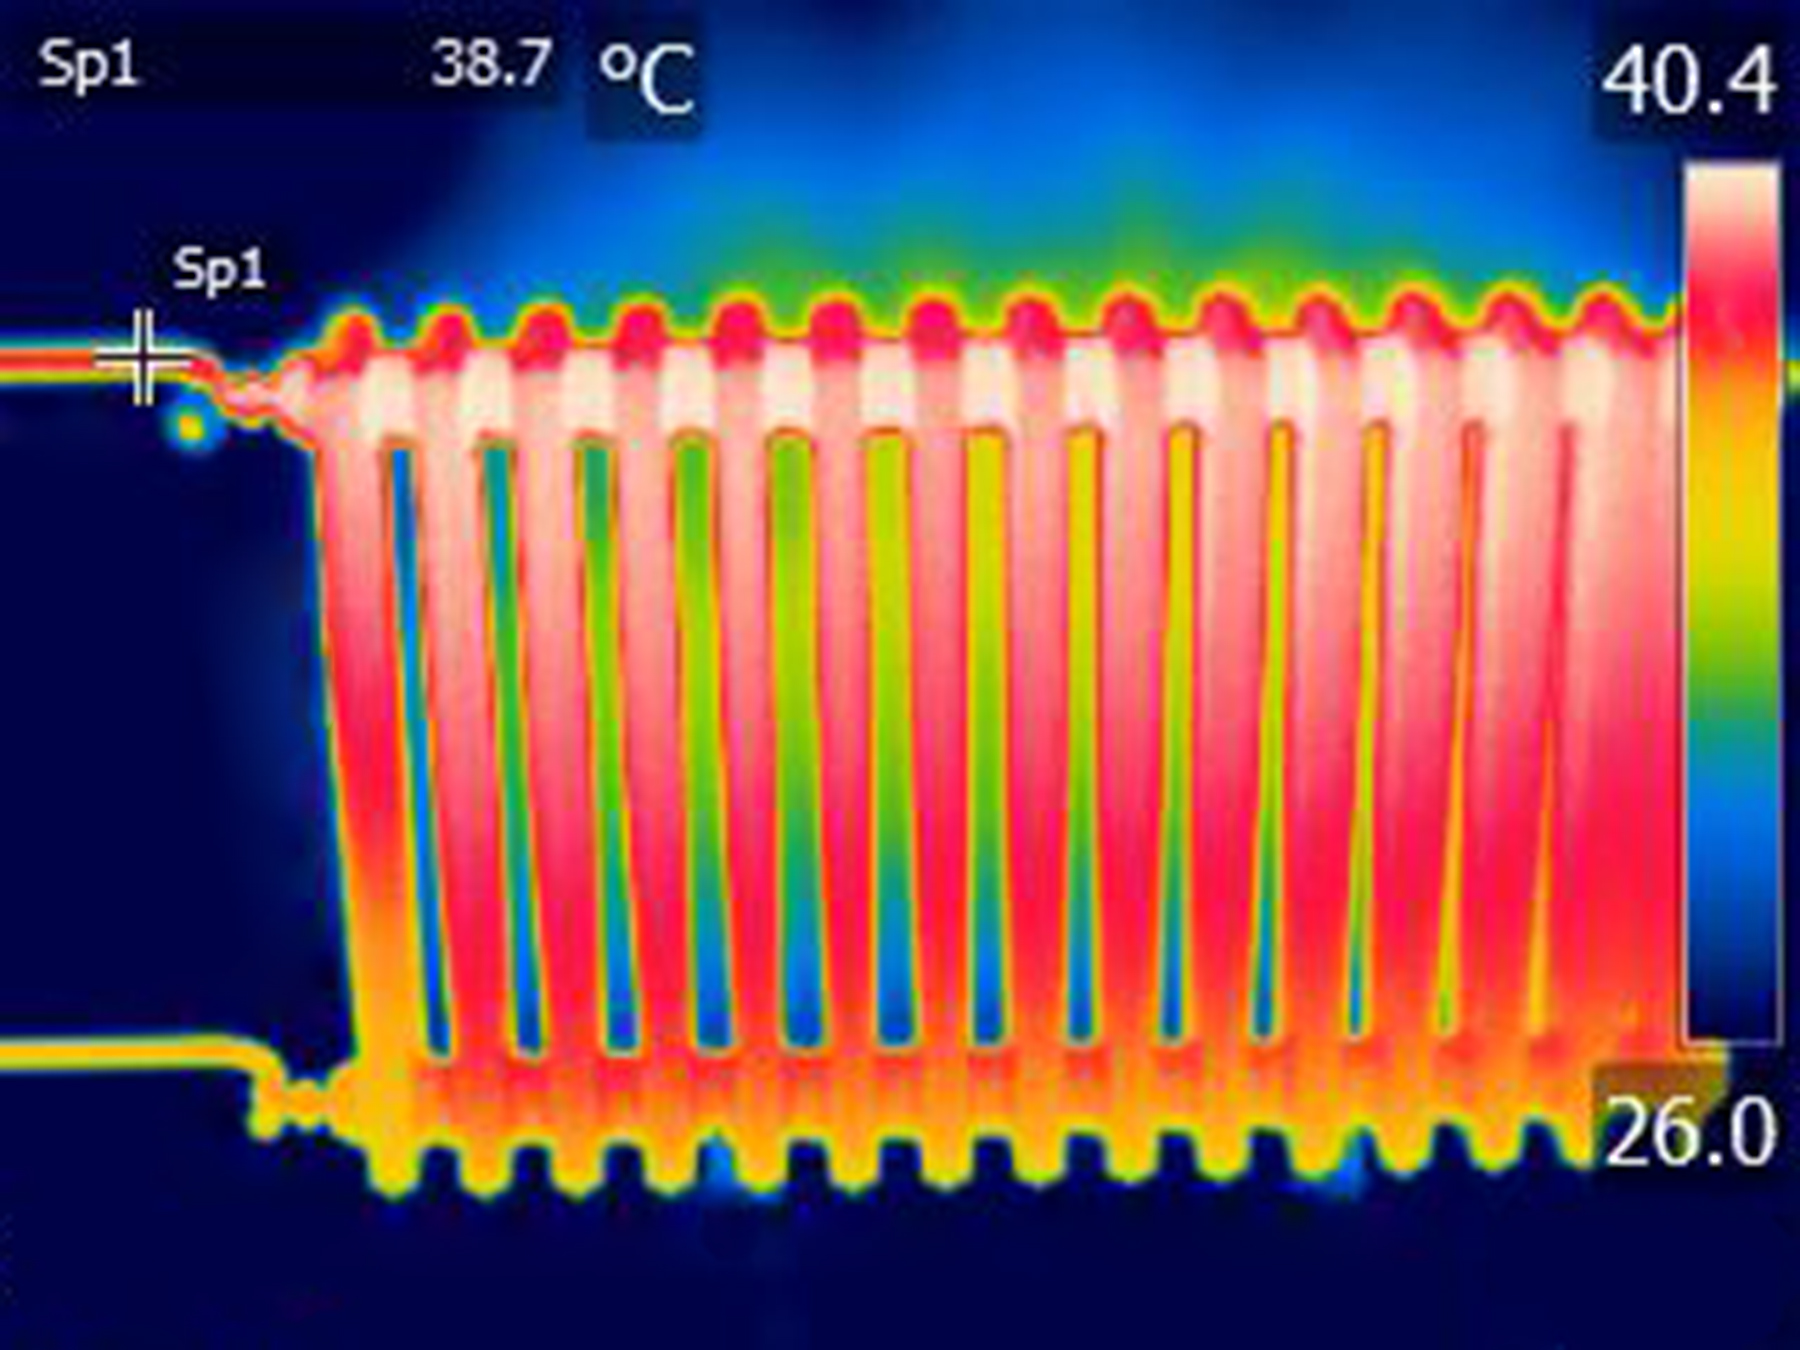 Thermal energy is shown radiating in this infrared image